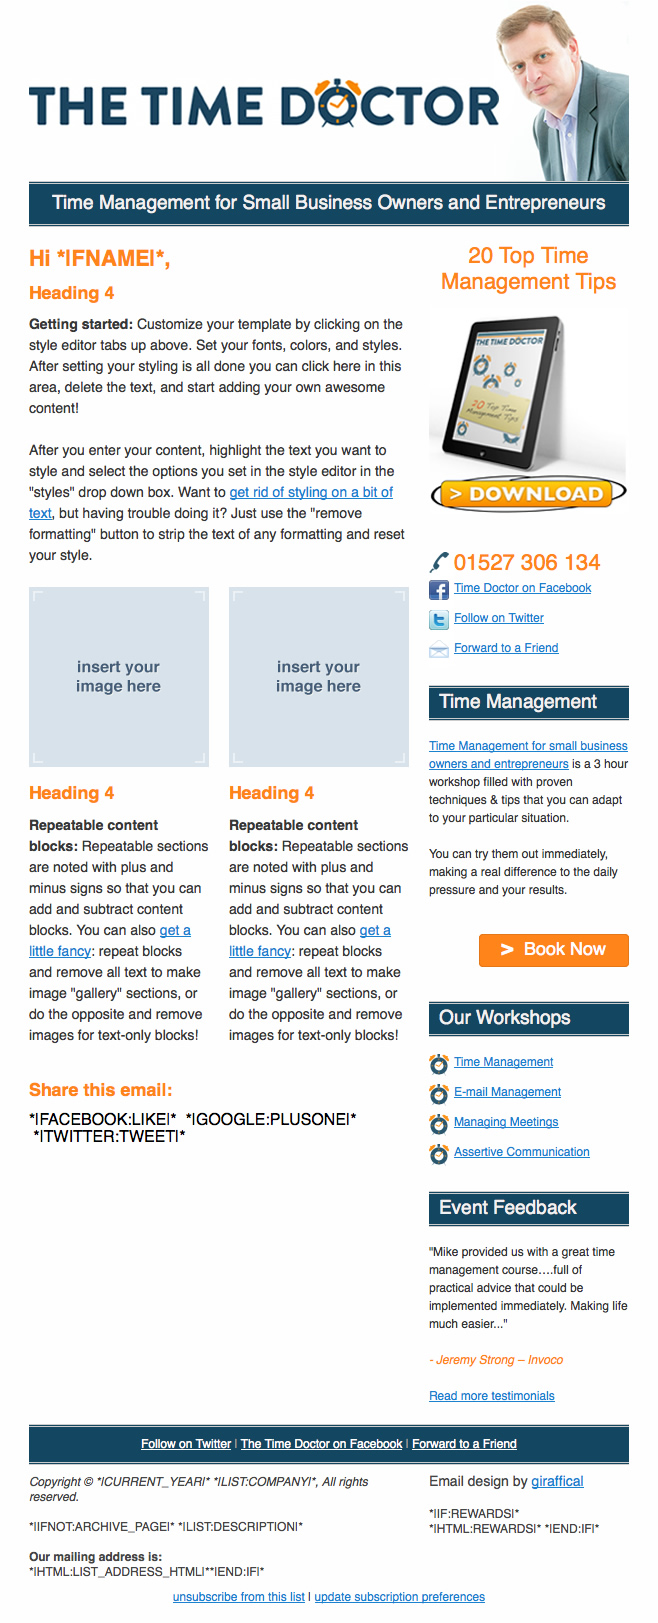 The Time Doctor Email Design